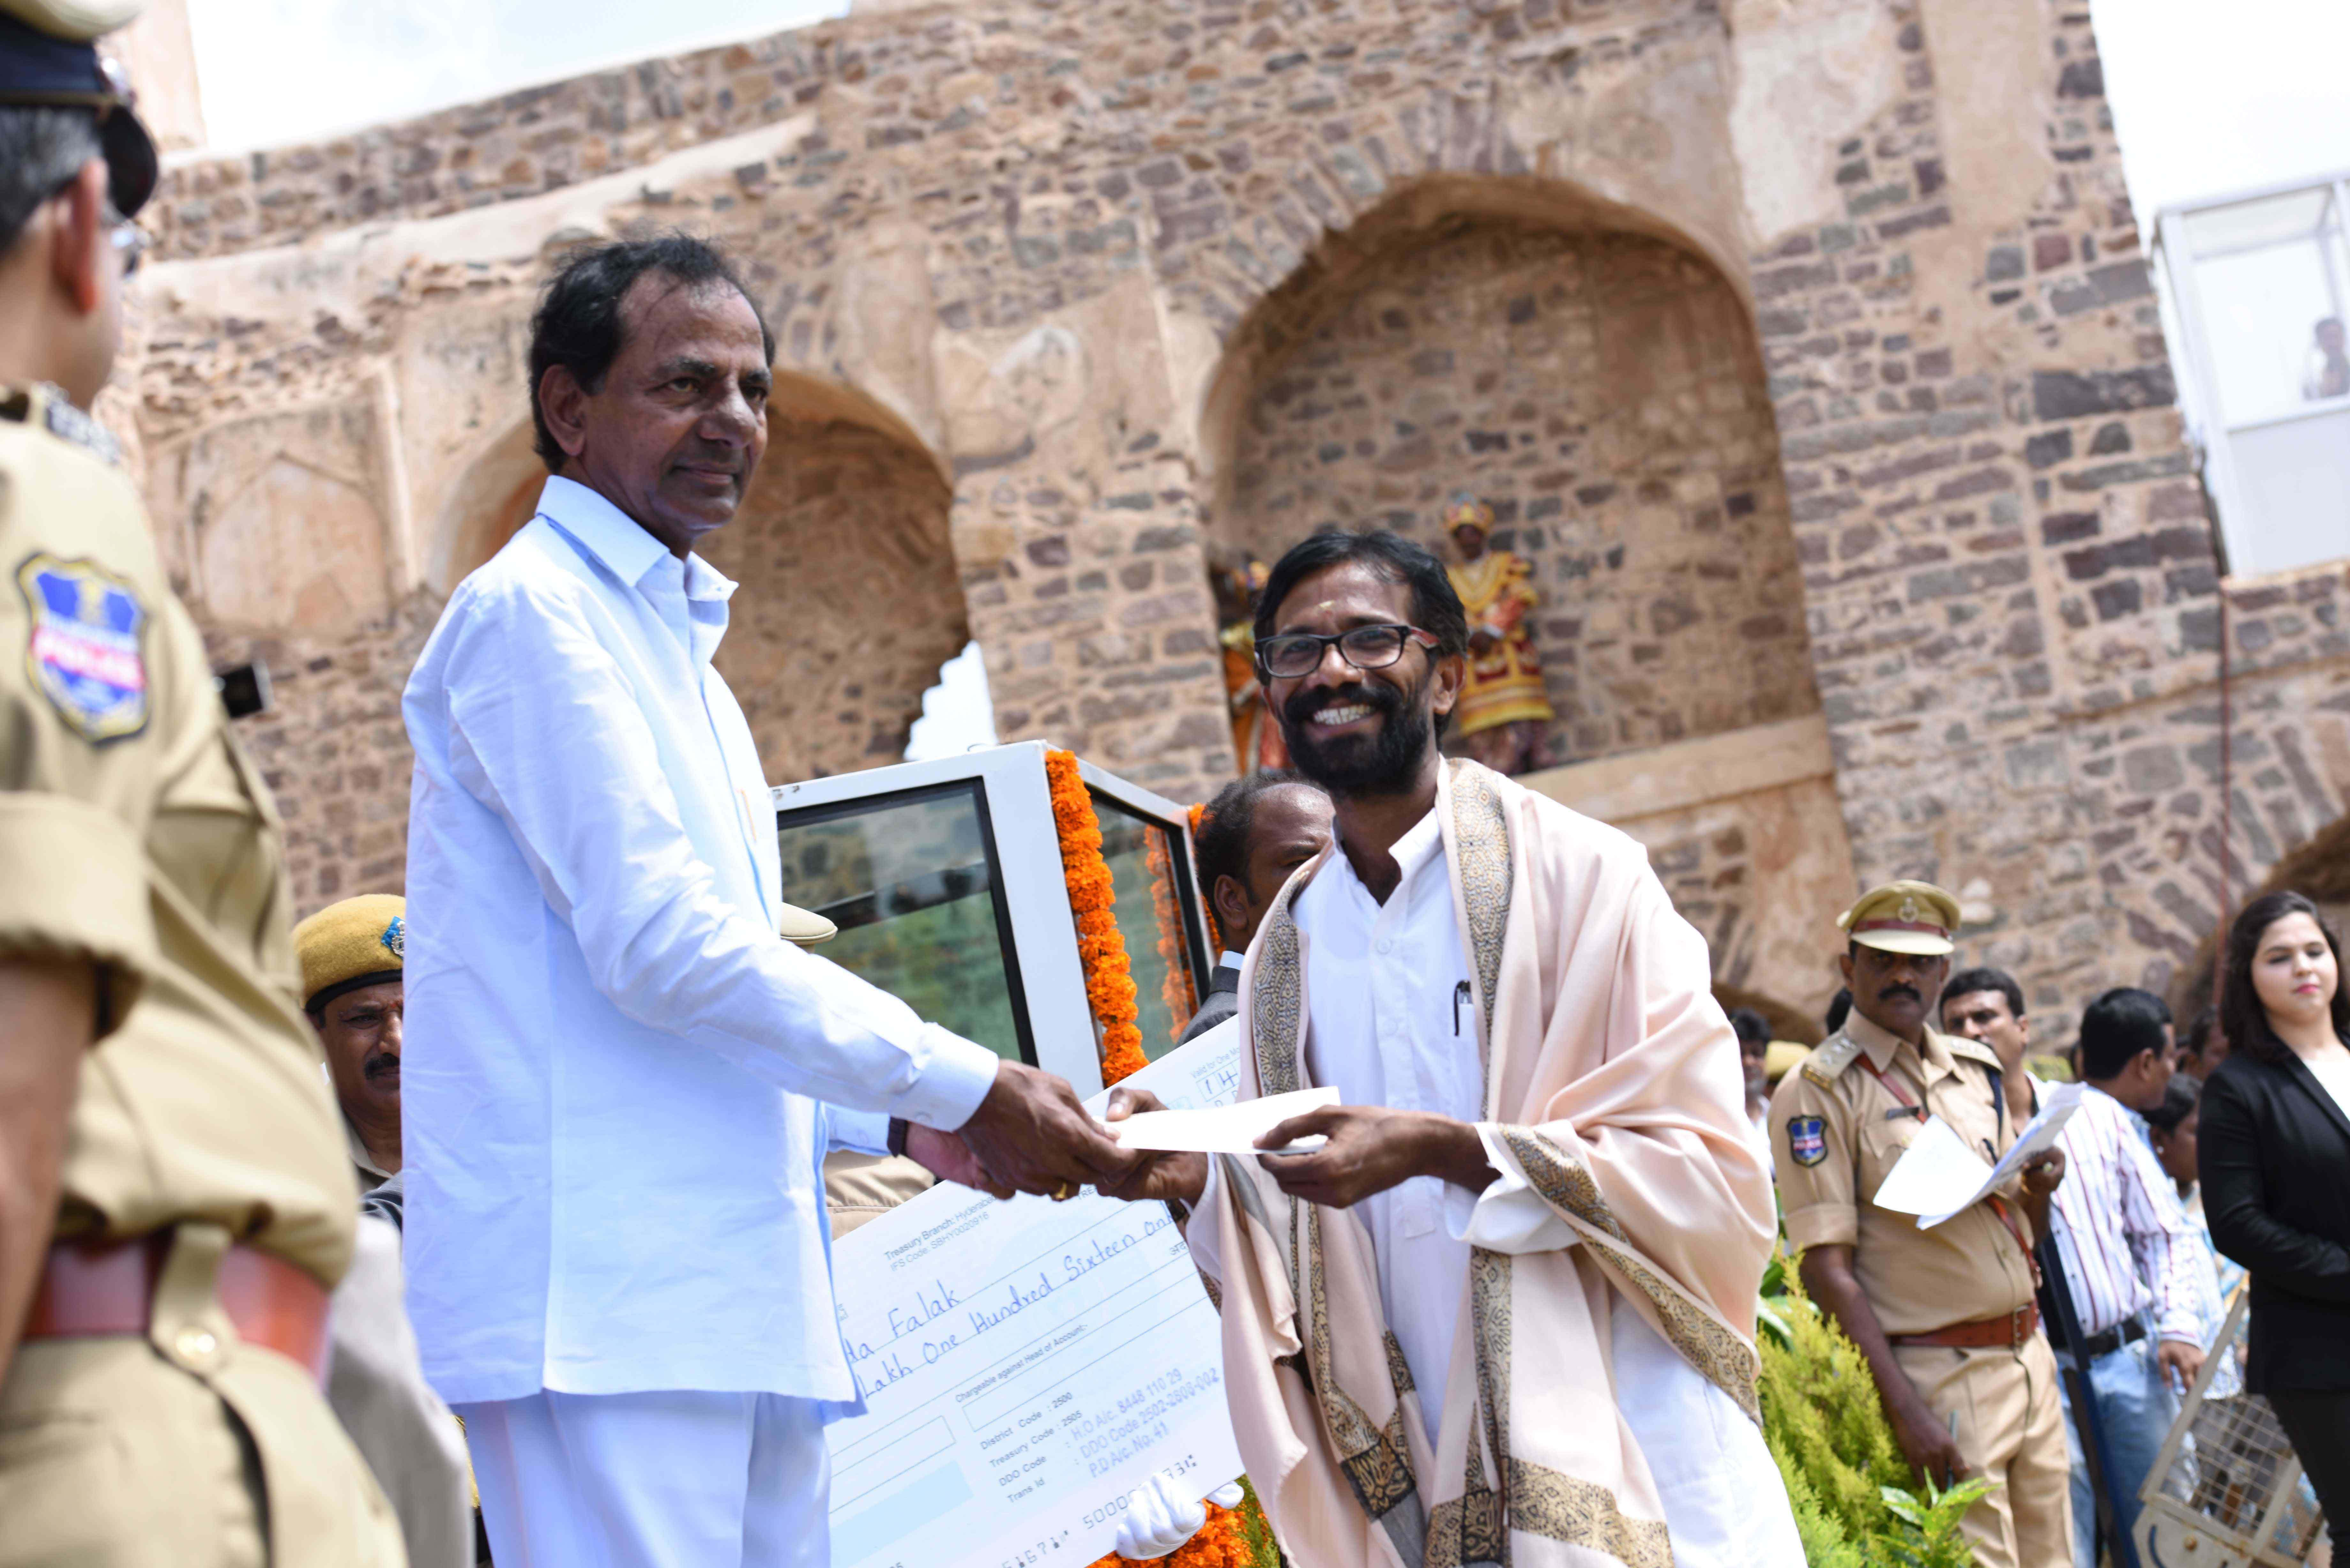 Telangana Chief Minister K. Chandrashekhar Rao participated in Independence Day celebrations at Golconda Fort on 15-08-2015.